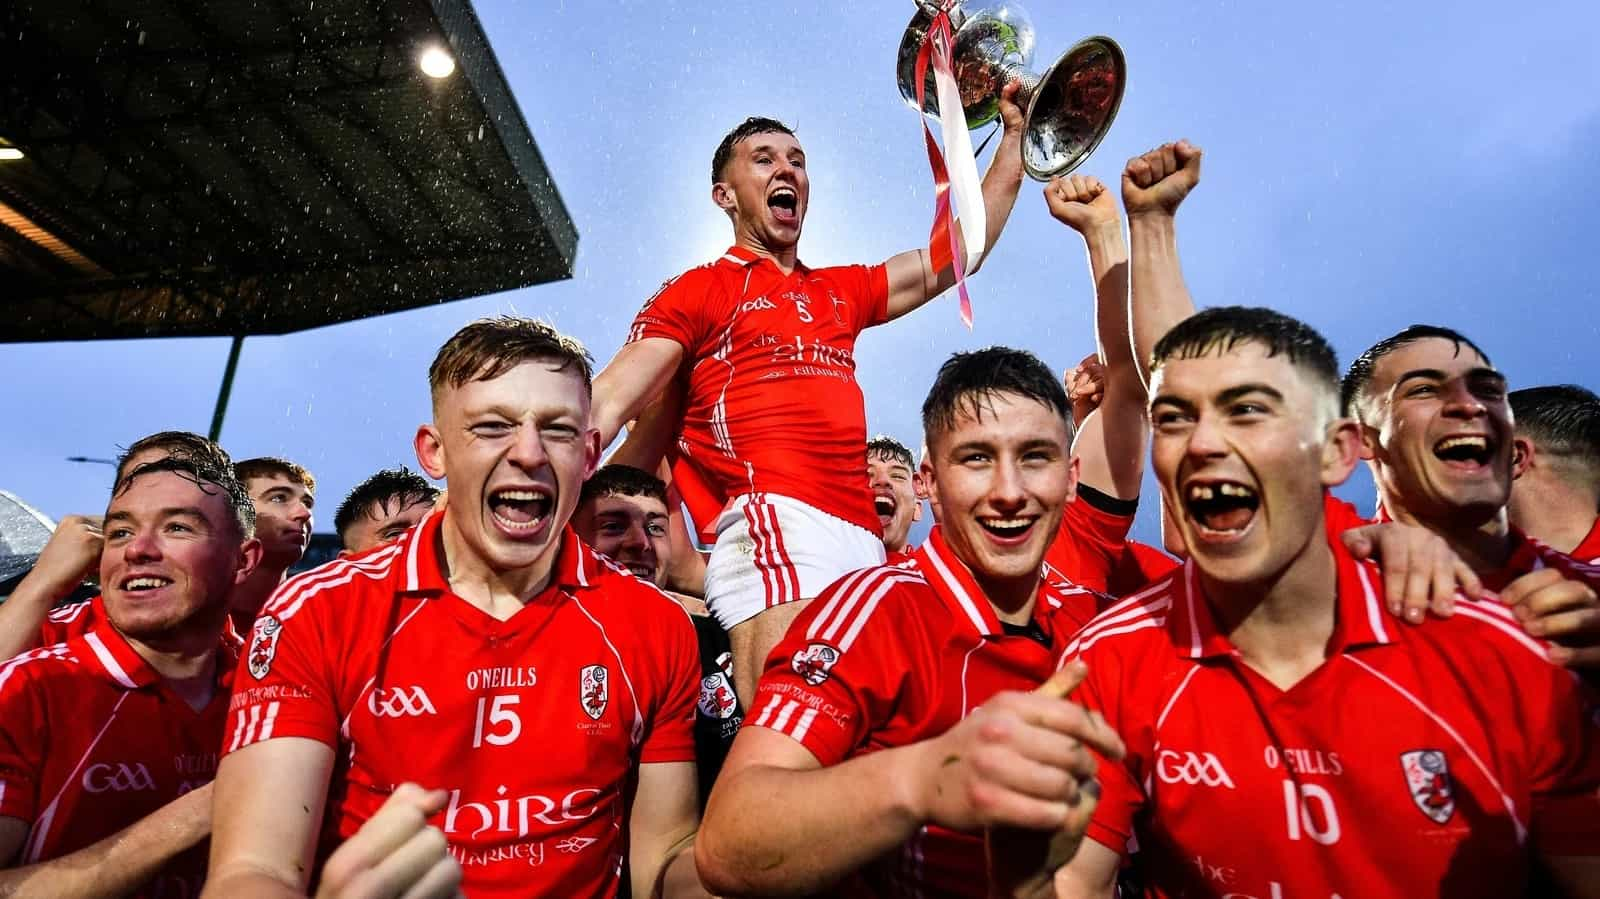 East Kerry are County Champions